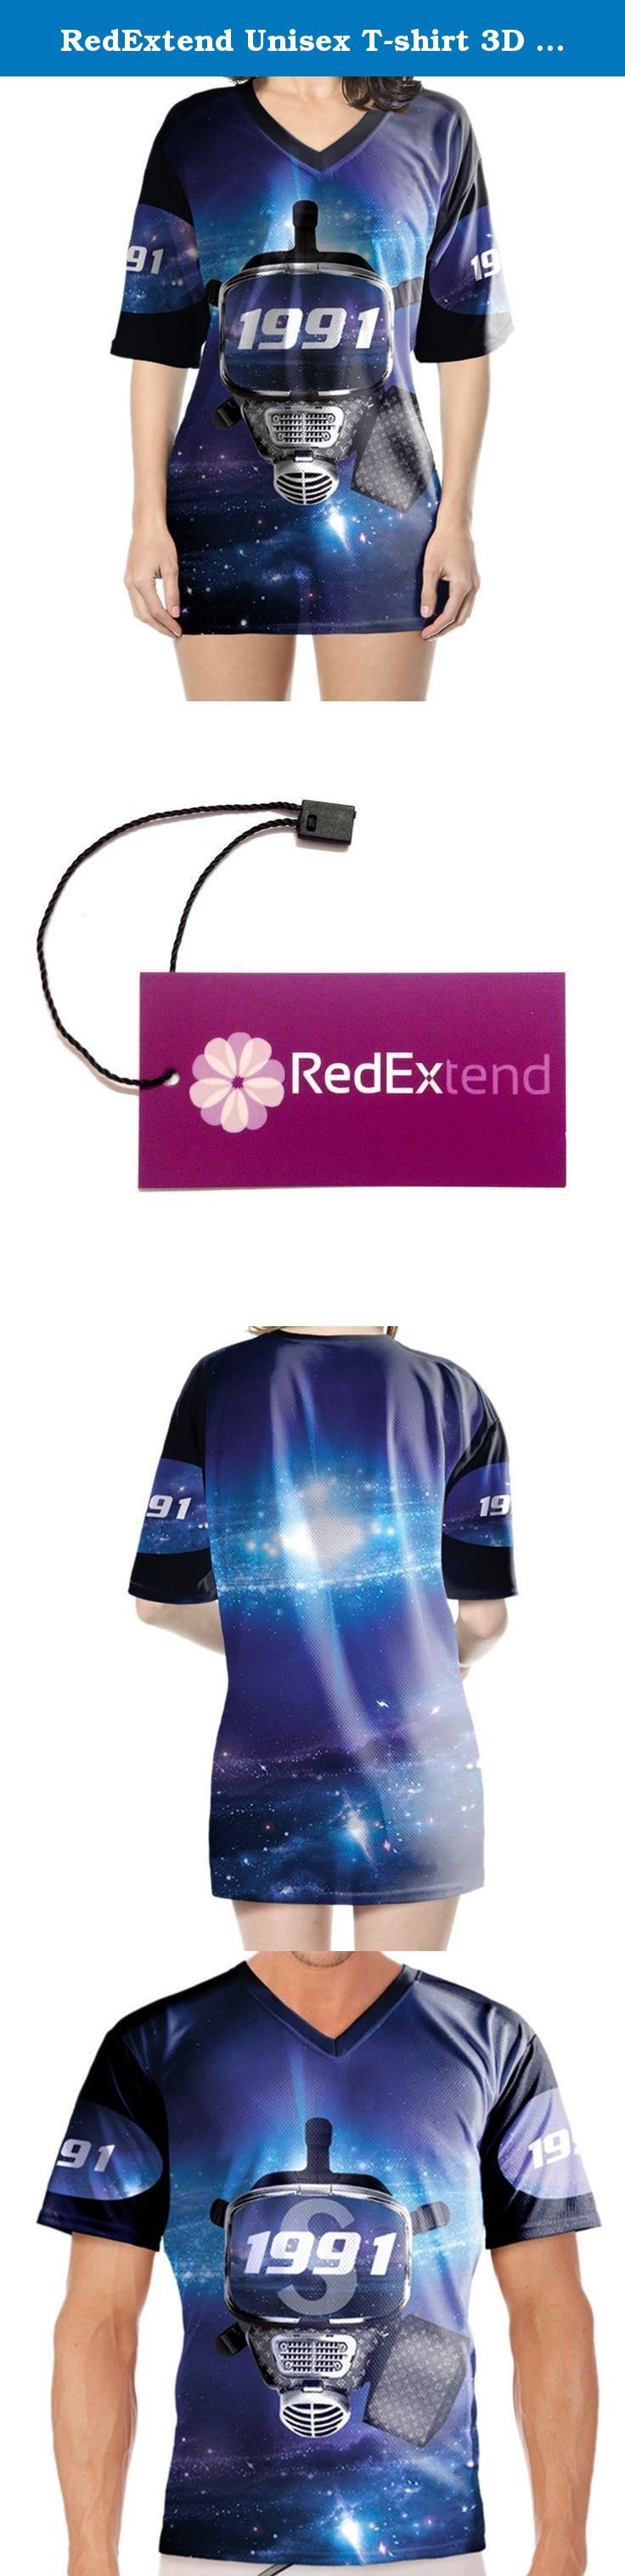 RedExtend Unisex T-shirt 3D Printed Cat Casual Sport Tops Training Jerseys. Our brand 'RedExtend' has been registered in US by USPTO. It is protected by laws in US. Please do not attempt to infringe our right otherwise legal action will be taken. Registration Number: 4719976. The package contains 'RedExtend' Tag 100% Brand New & High Quality Shirt with RedExtend Tag in each package. Fabric: Polyester. Pest control, Quick-drying, Breathable. Good scalability and fastness, Washable Pinhole...